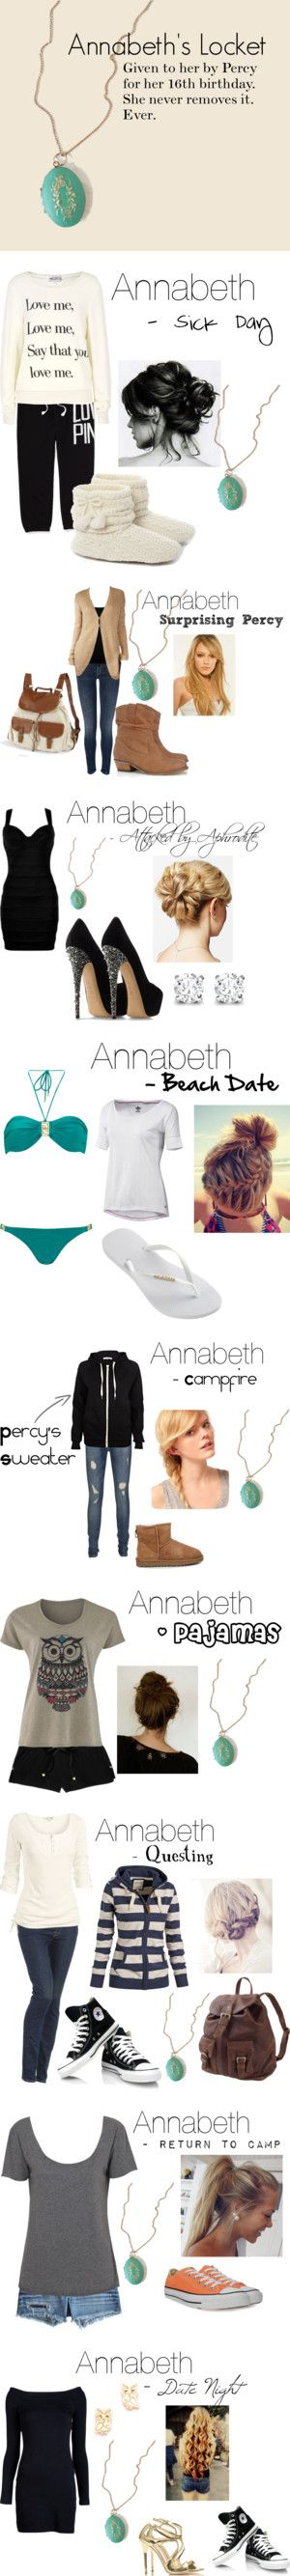 """Percy Jackson & The Olympians: Annabeth"" by dyingjusttoknowyourname ❤ liked on Polyvore"